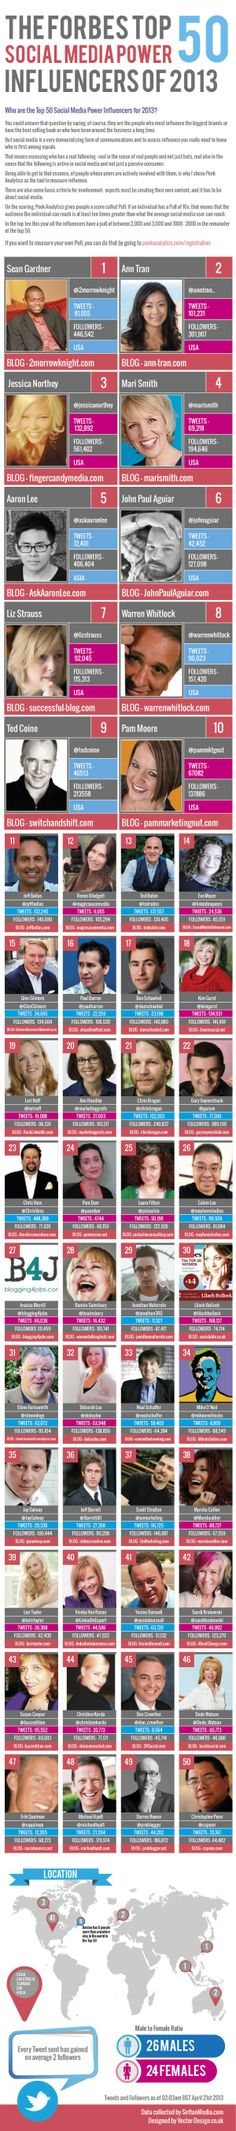 Forbes released their Top 50 Social Media Power Influencers of 2013 on the of April. This infographic shows stats and figures of the influencers in the top Is there anyone else on the list you think should be there and why? Marketing Digital, Inbound Marketing, Marketing Viral, Marketing Online, Internet Marketing, Social Media Marketing, Marketing Articles, Marketing Ideas, Social Media Influencer